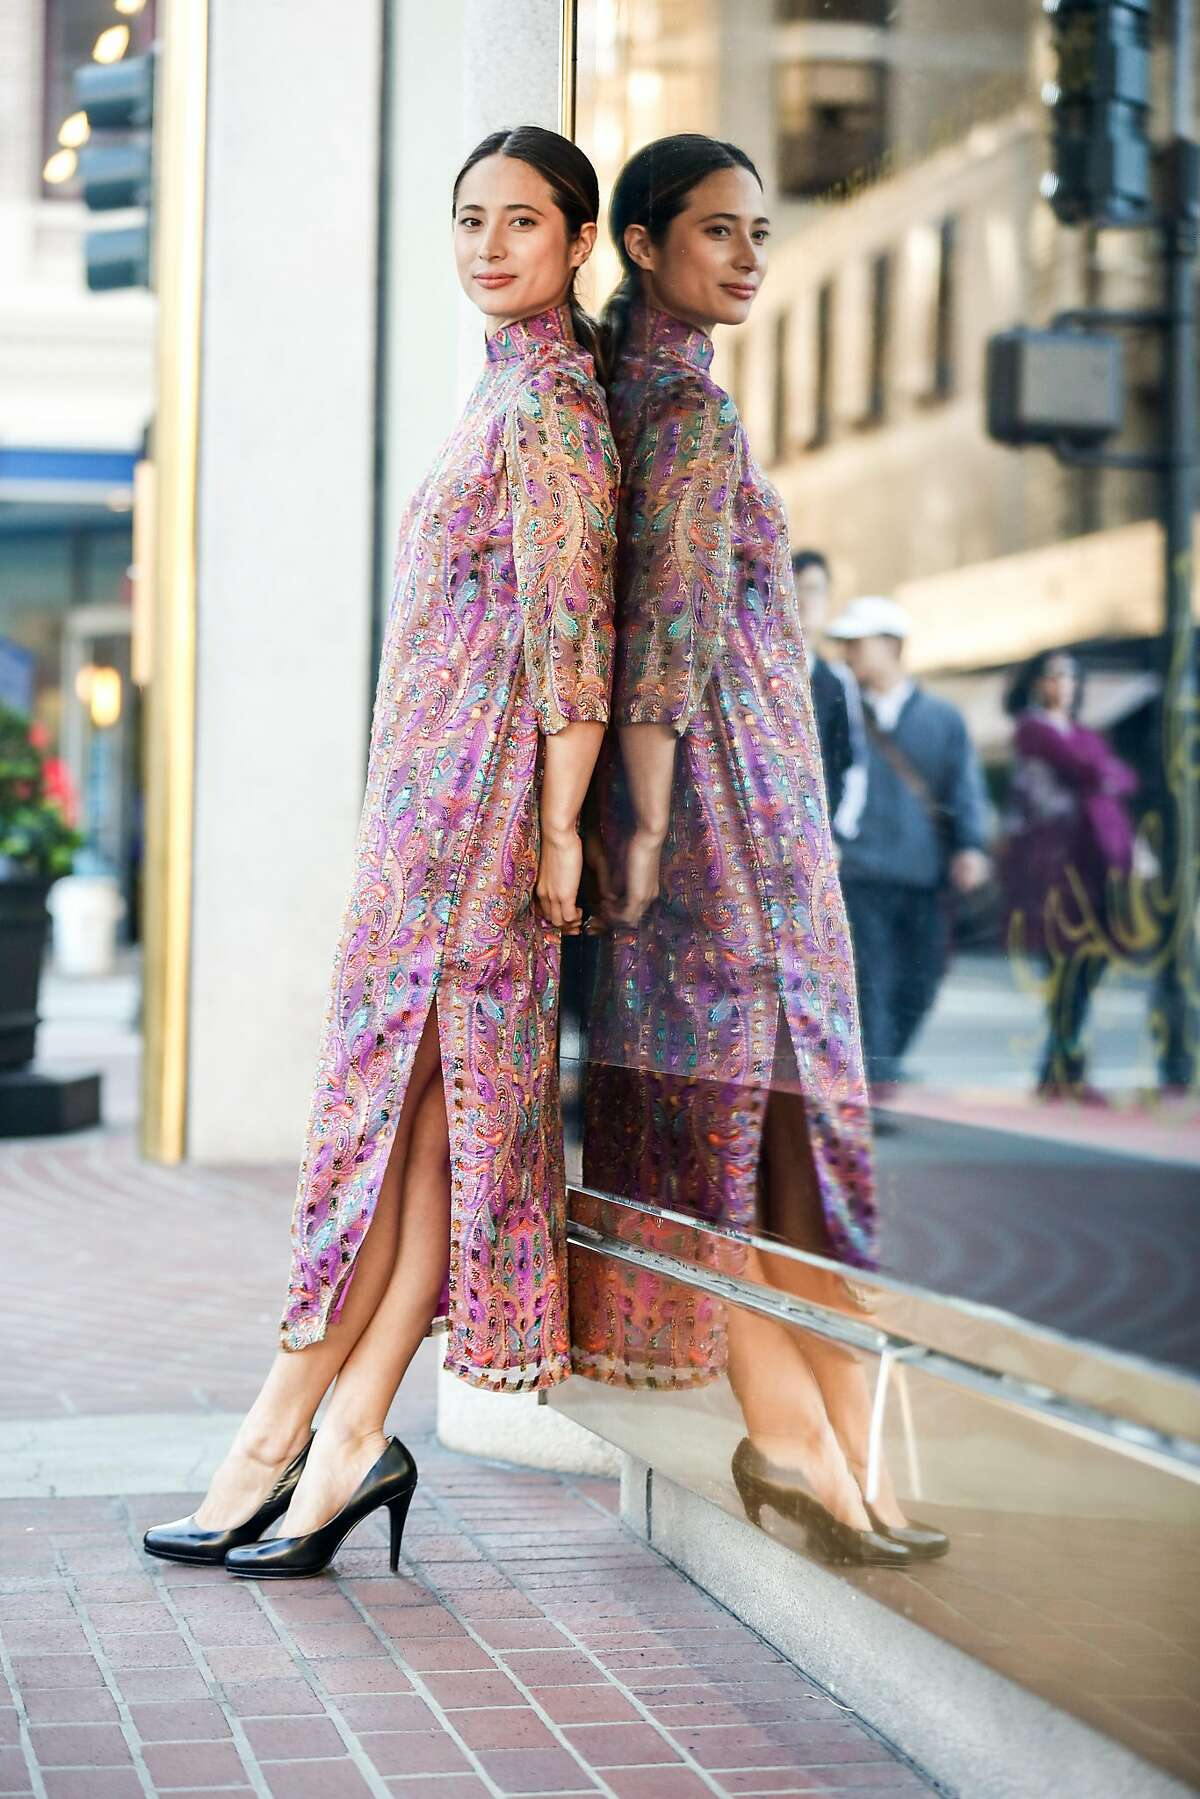 Model Hannah Token wears a Cecilia Chiang dress designed in honor of Lunar New Year at Saks Fifth Avenue on Friday, February 15, 2018 in San Francisco, California.